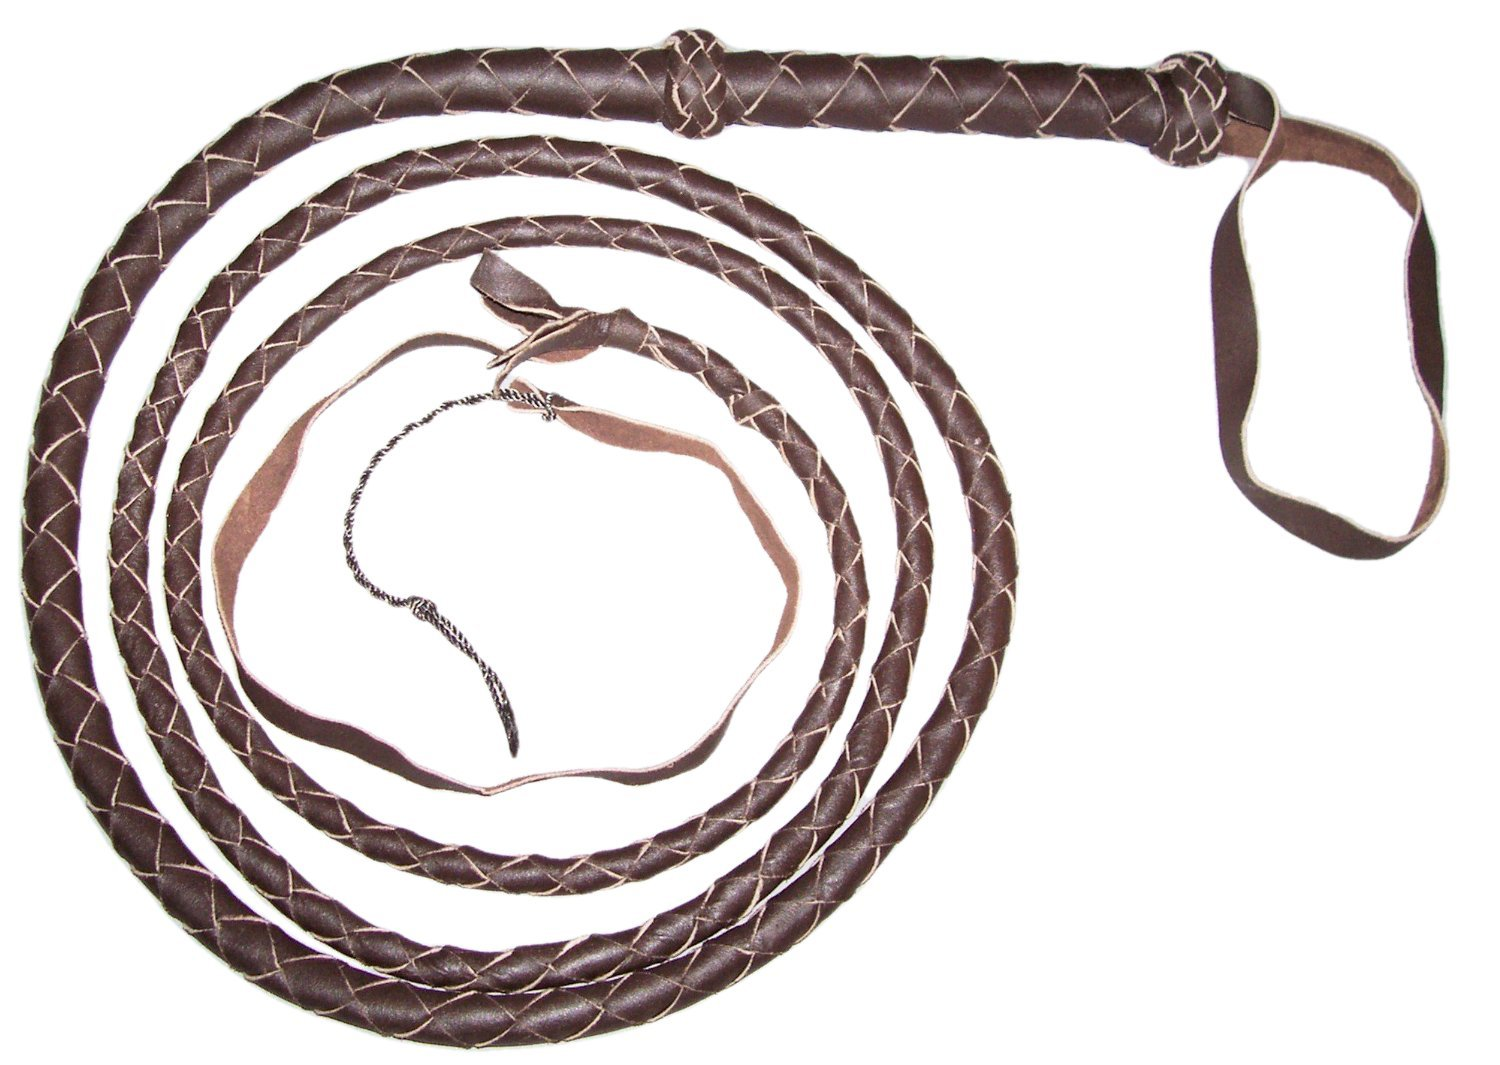 10 Foot 4 Plait DARK BROWN Real Leather BULLWHIP bull whips JZRJ